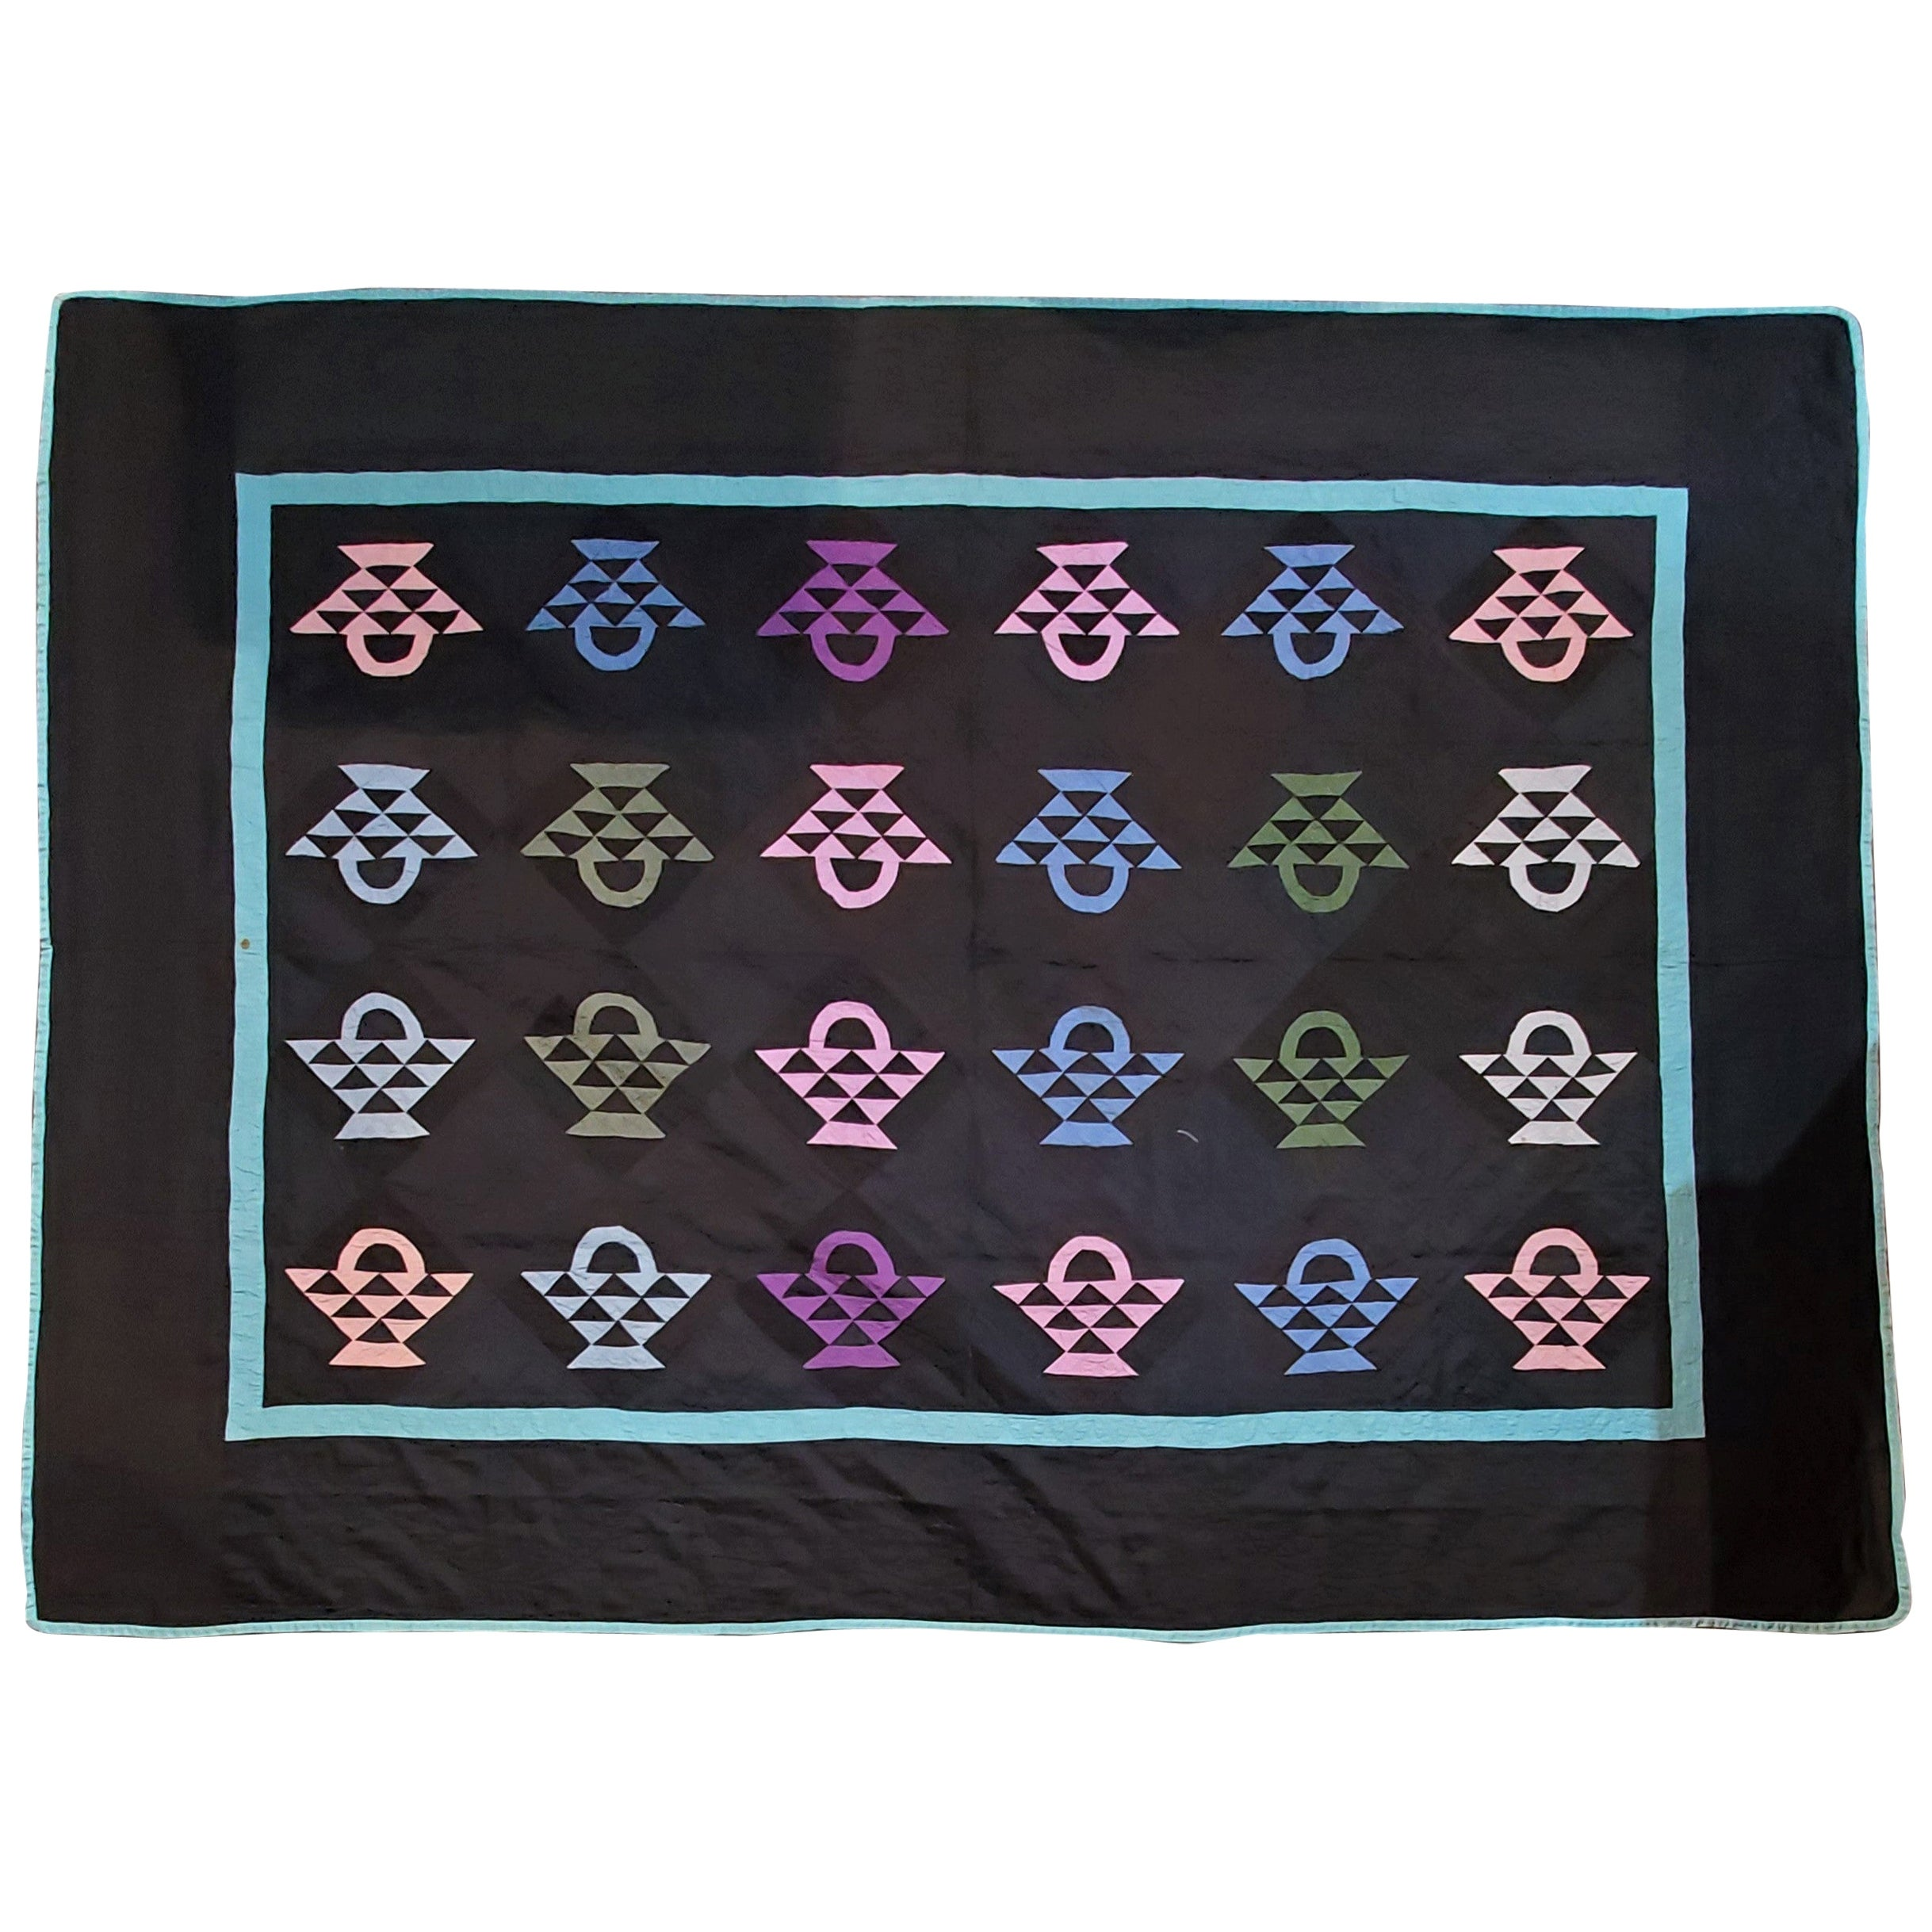 Amish Baskets Quilt from Holmes County, Ohio